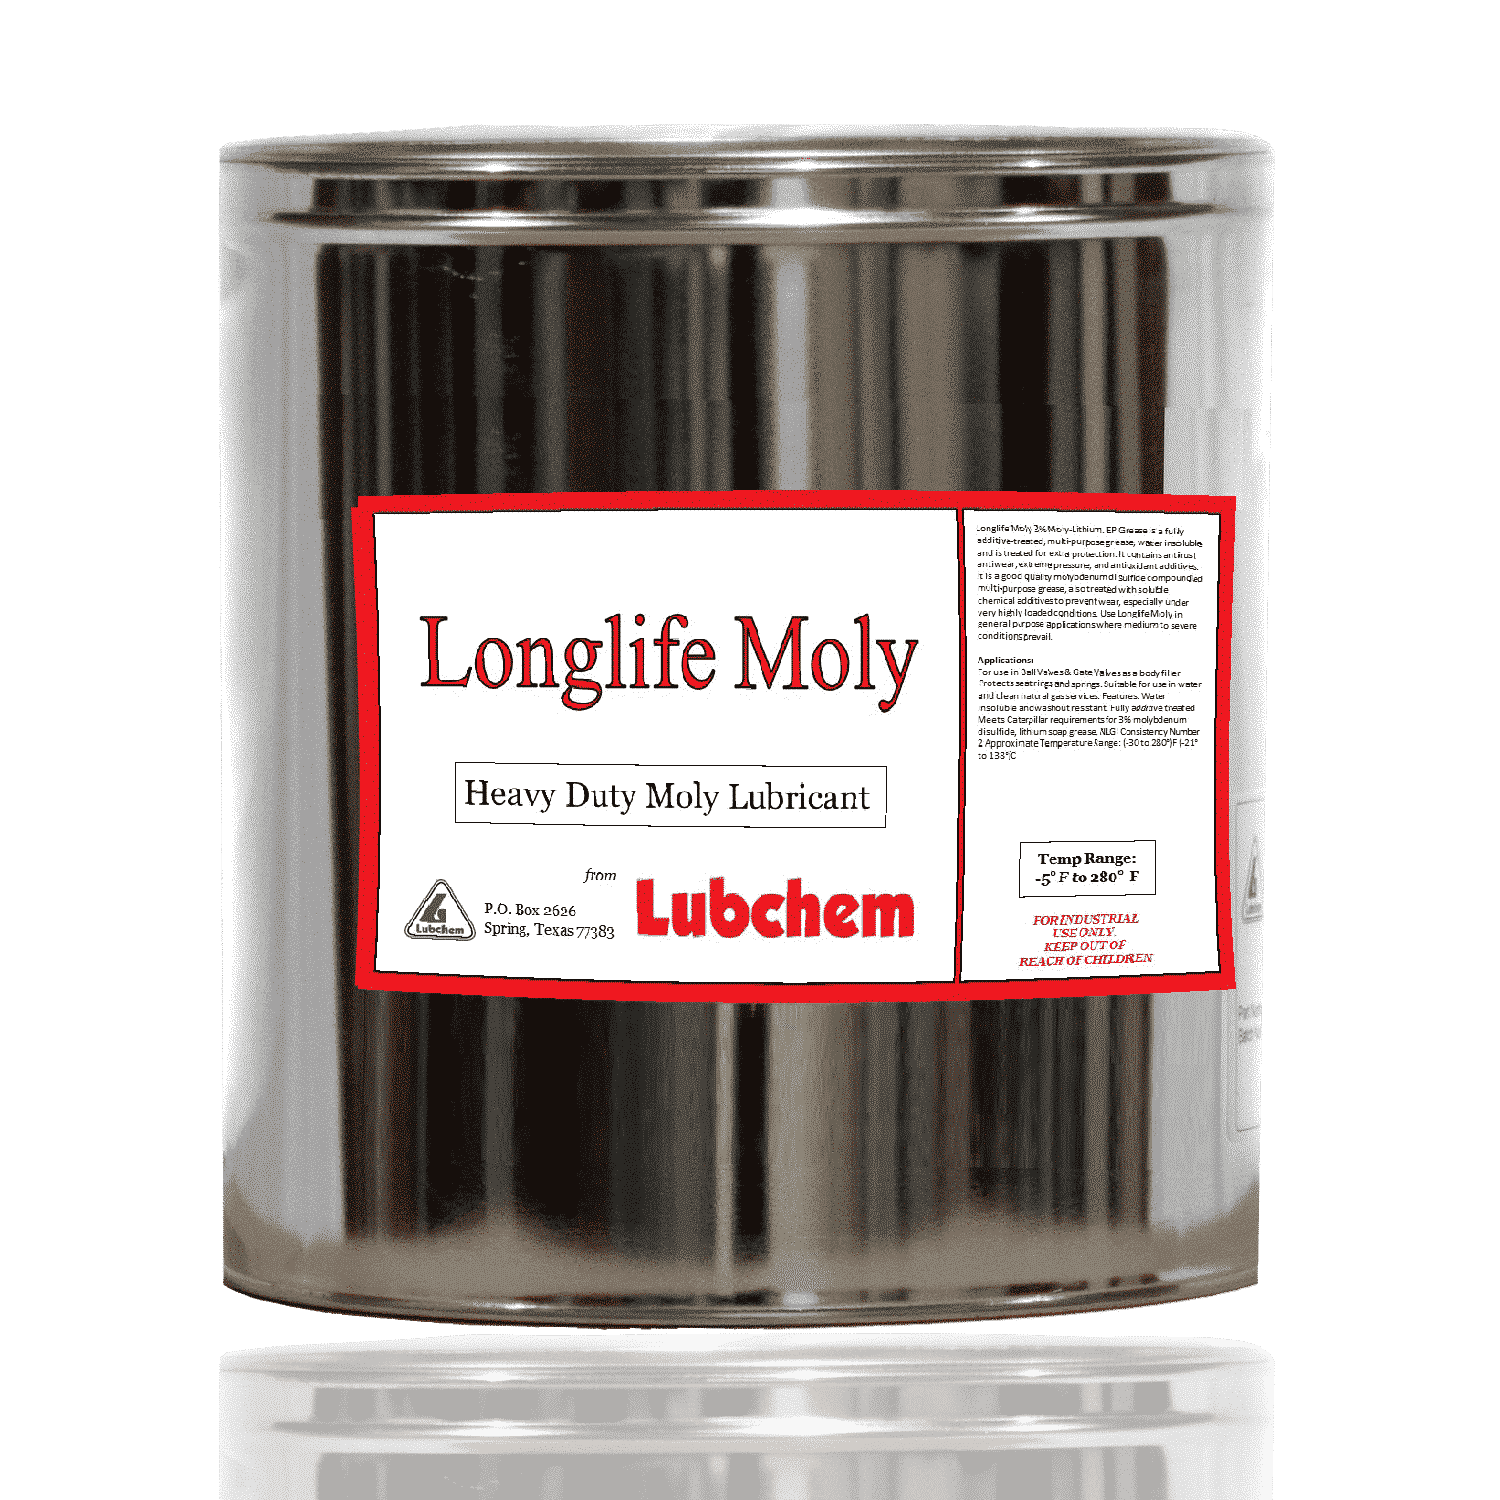 lubchem longlife moly can-min